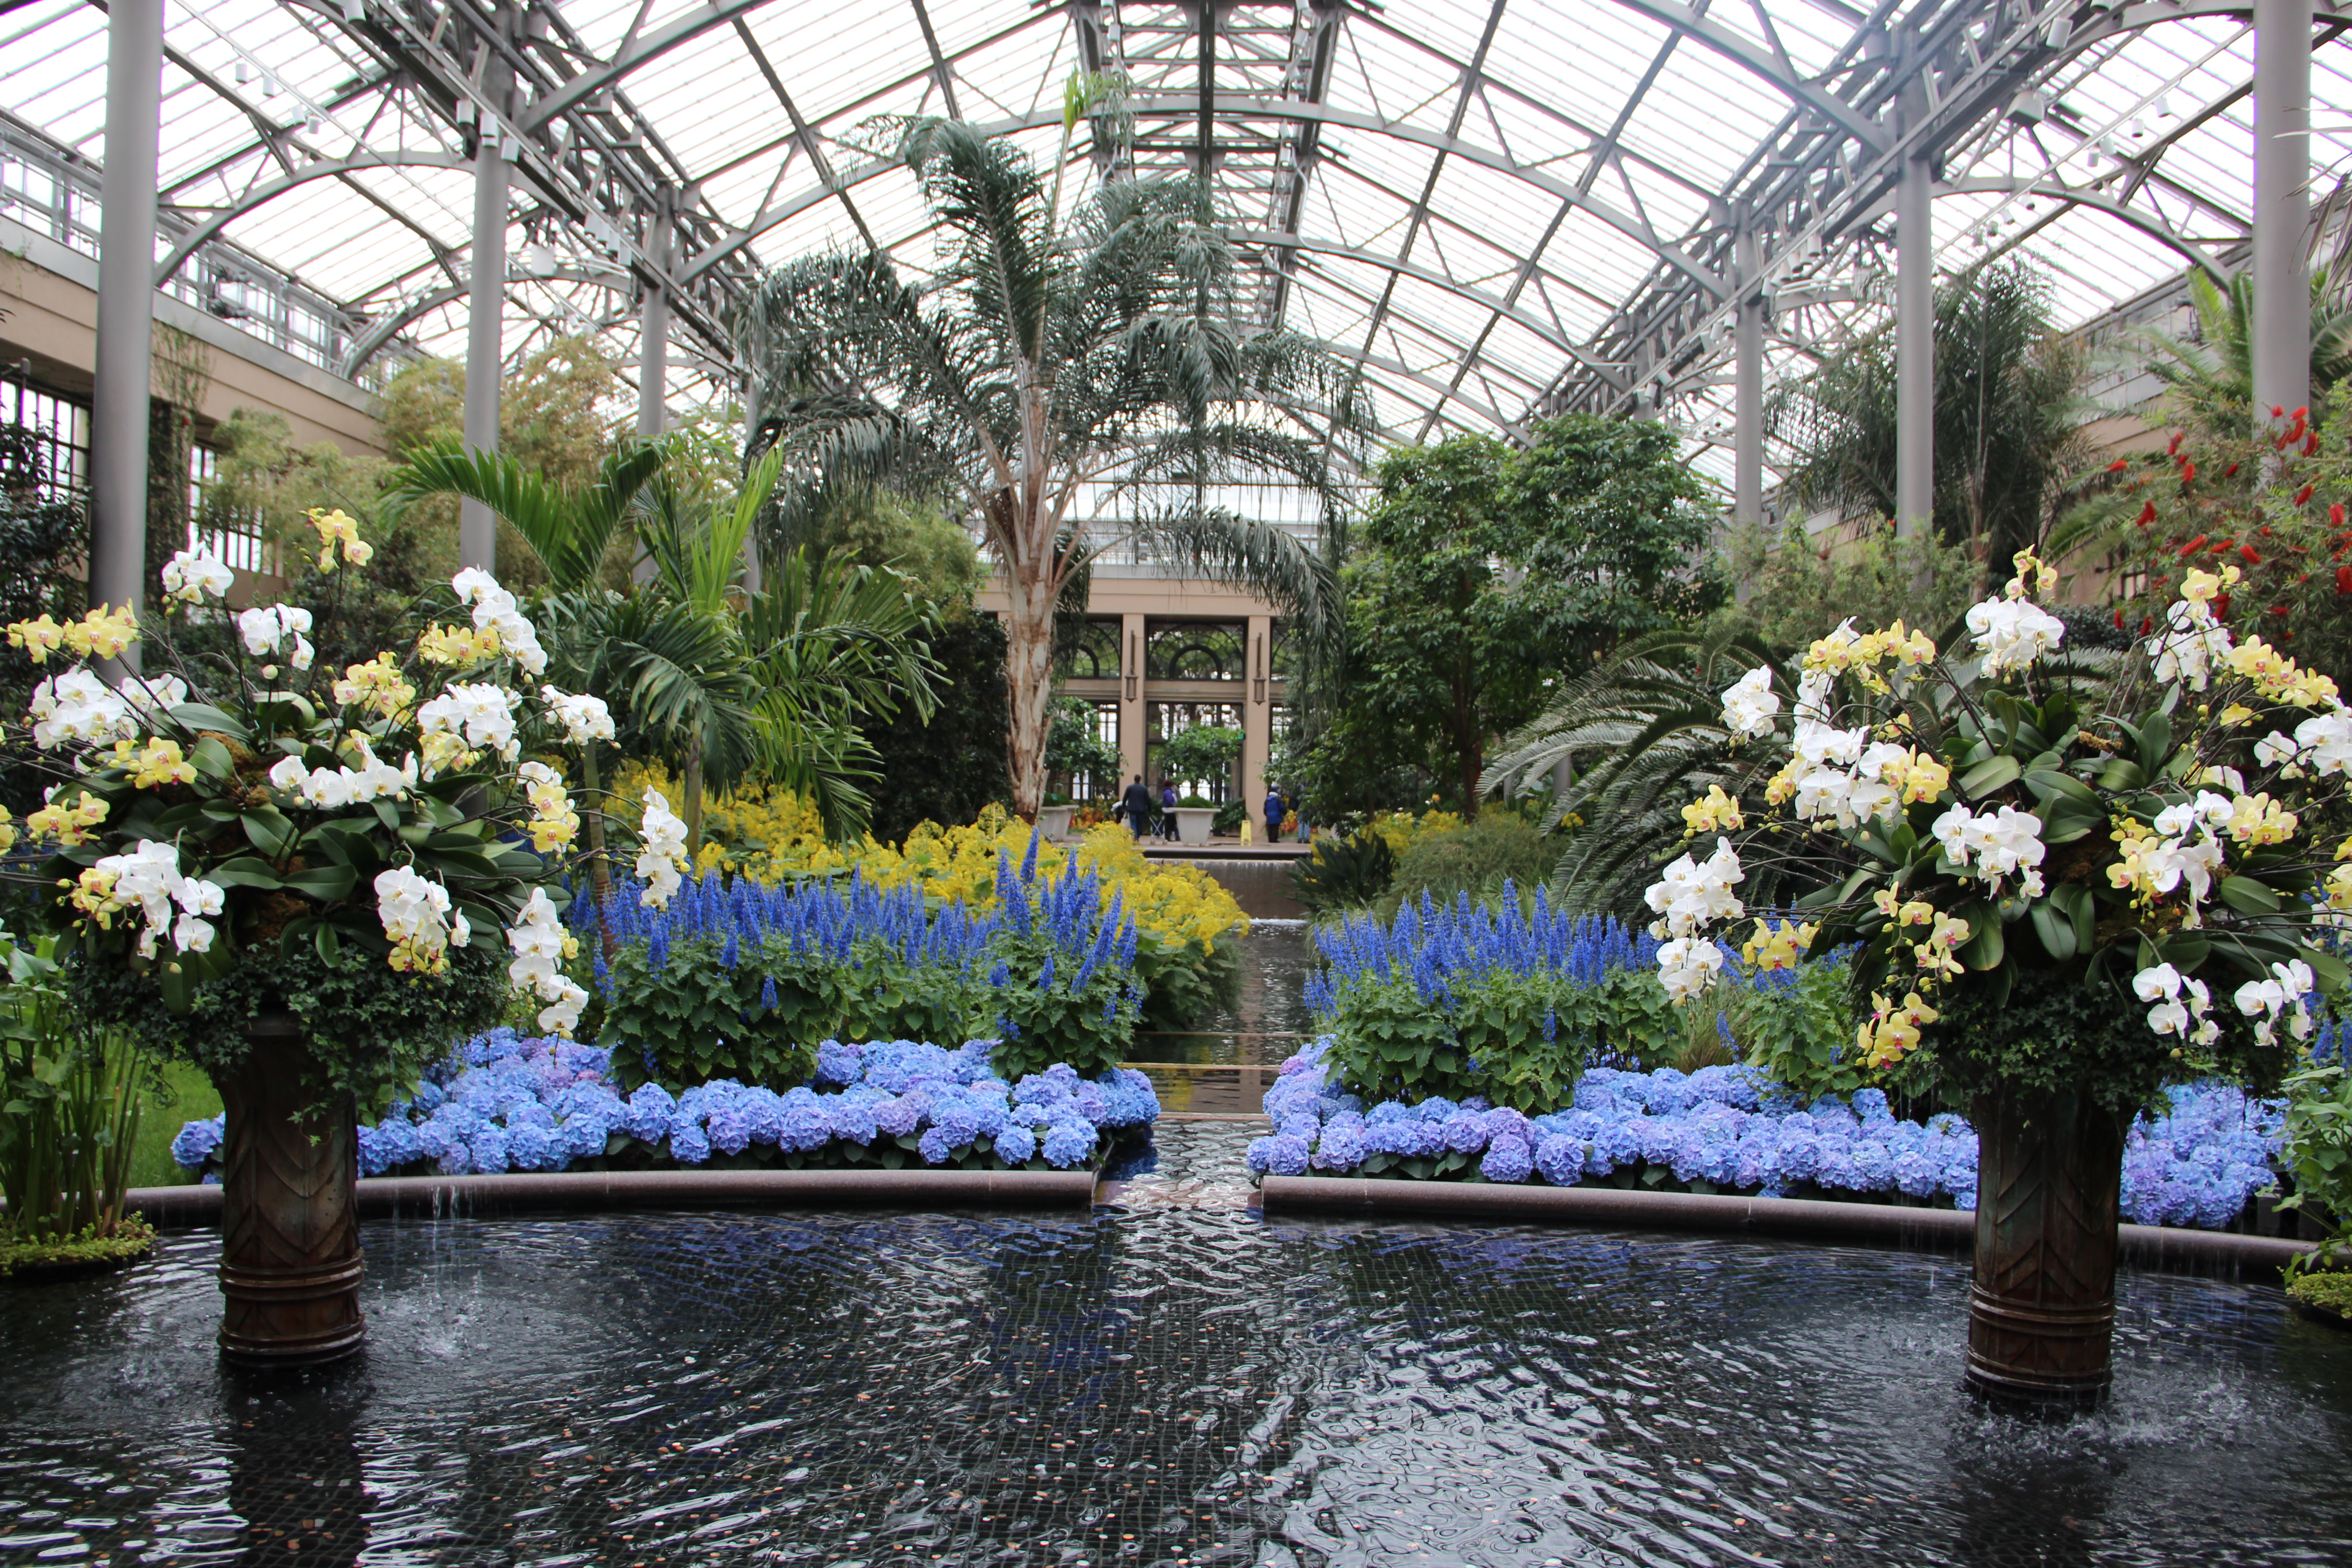 Longwood Gardens Summer Concerts: Of Longwood Gardens And Putting Down Roots